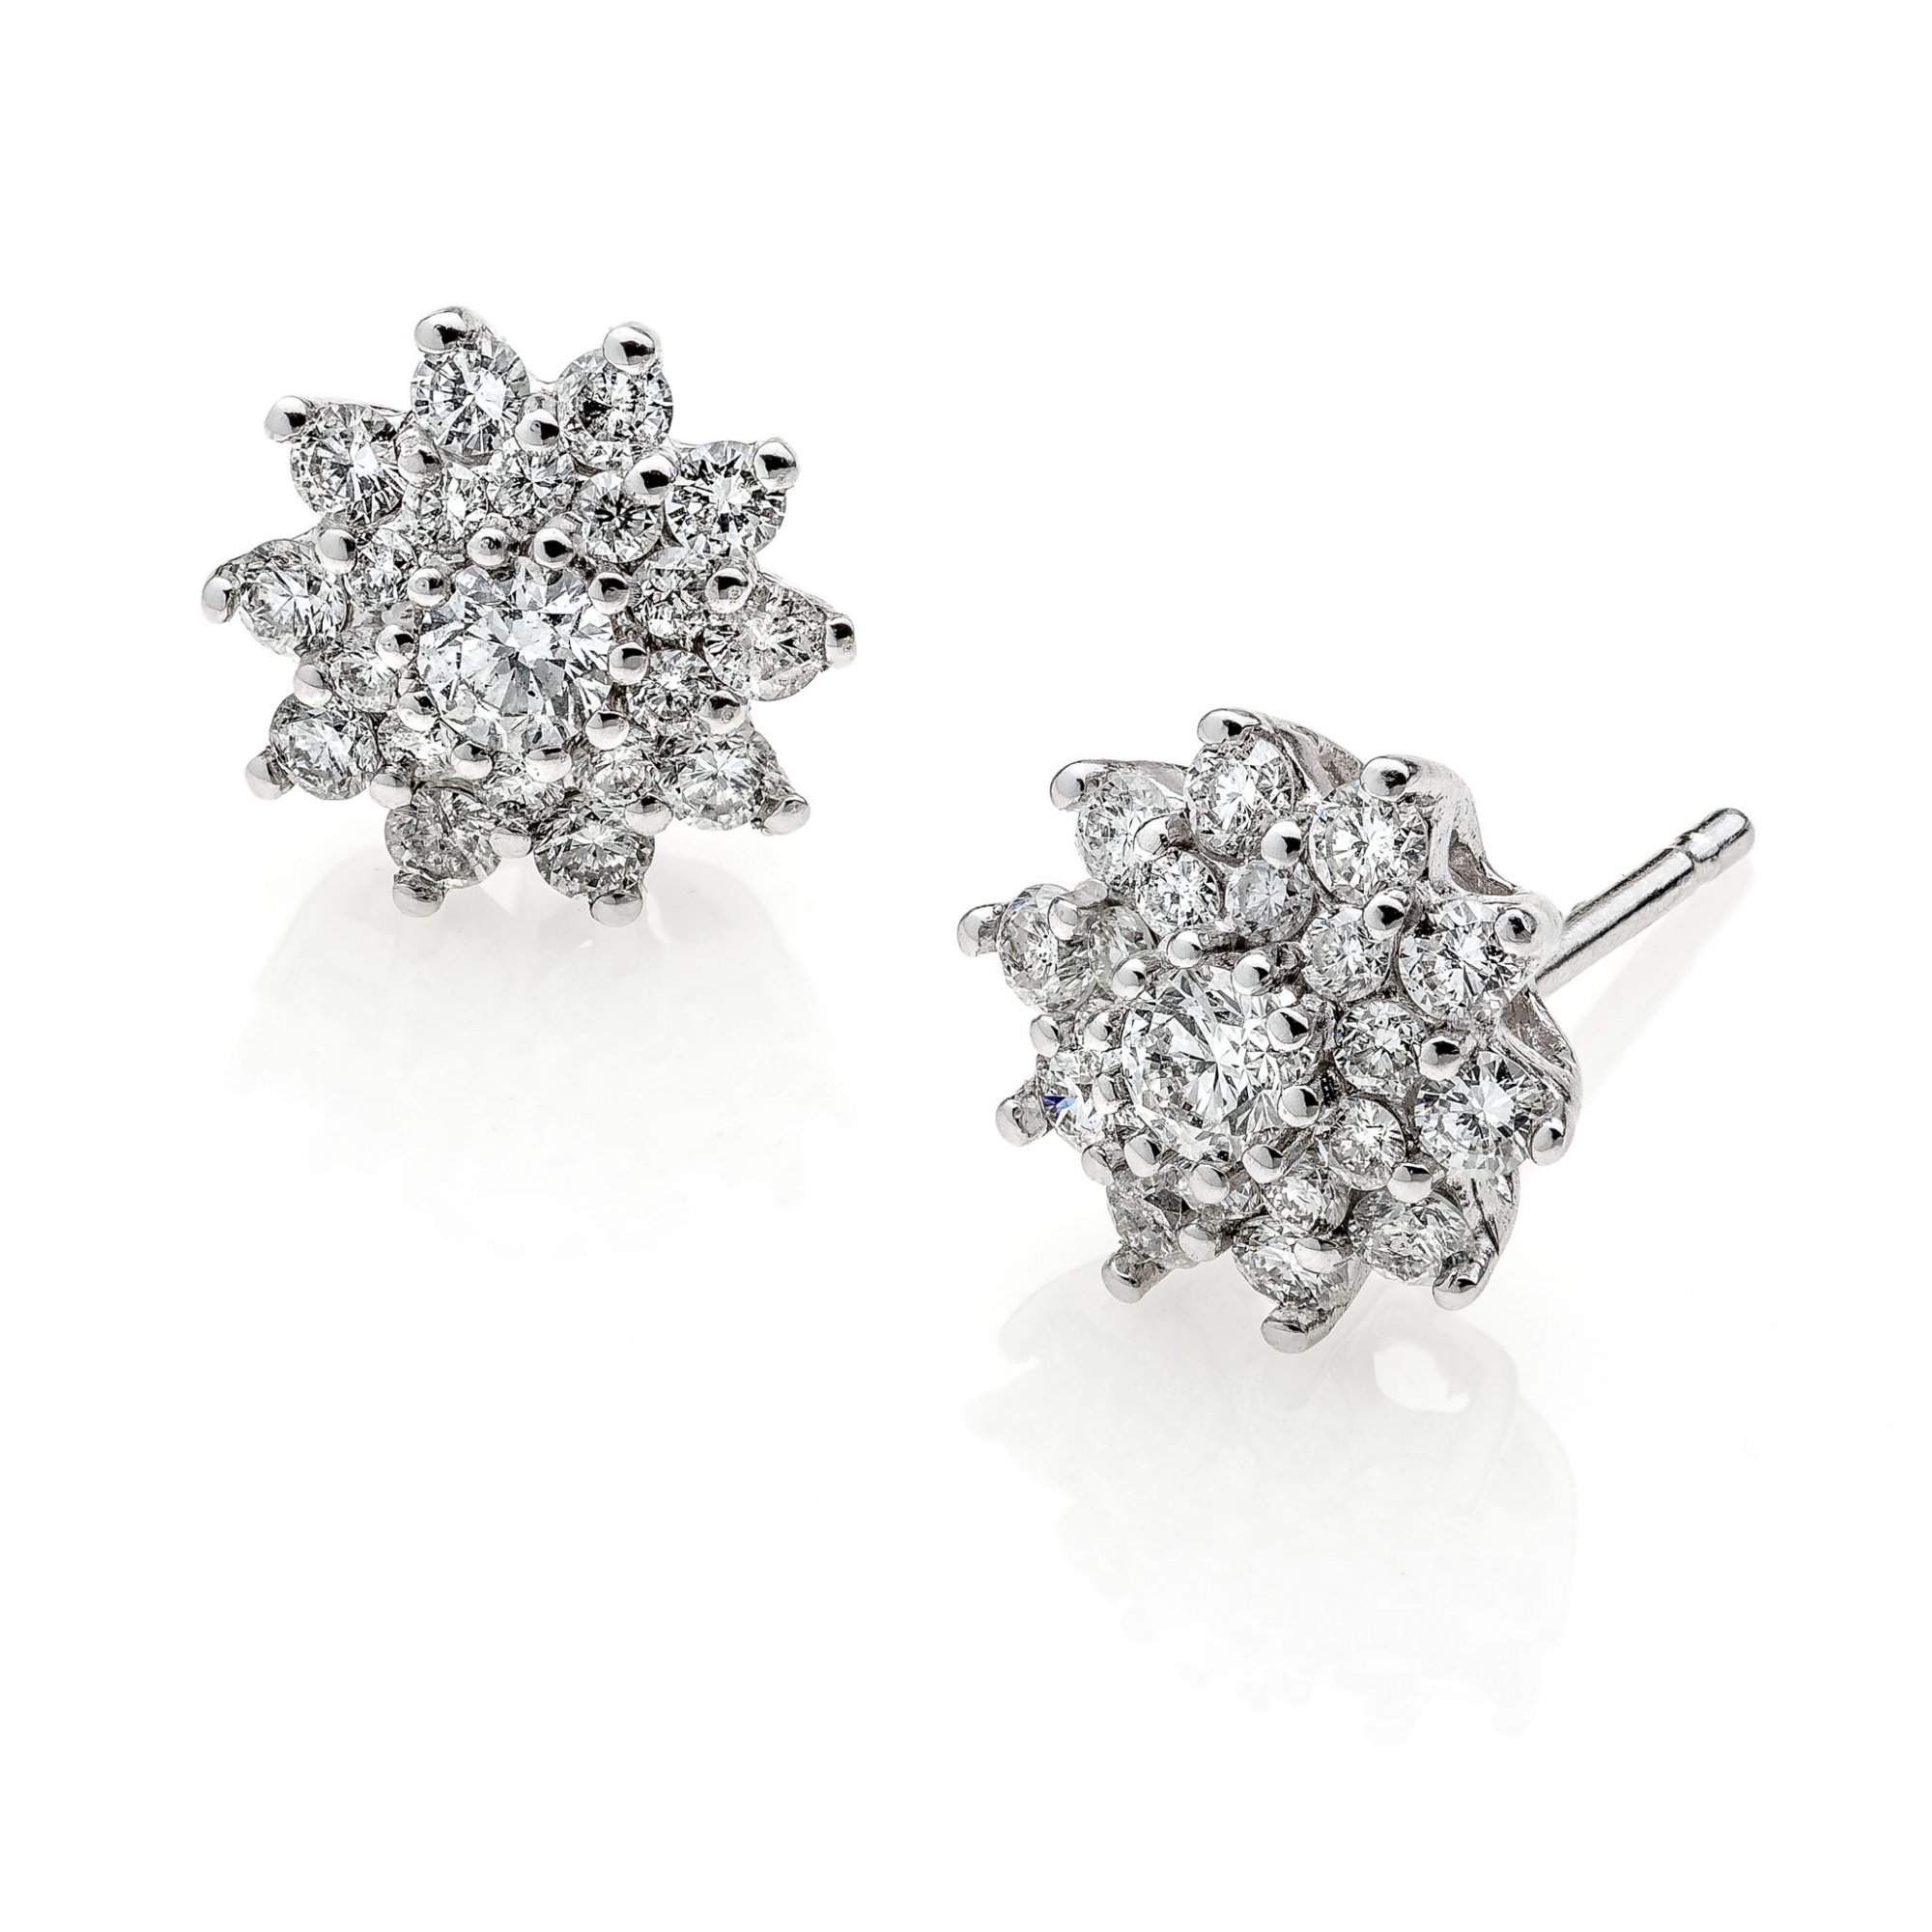 18 KT white gold earrings with round brilliant cut diamonds ct.0.60 + ct.0.20 VS1 G color